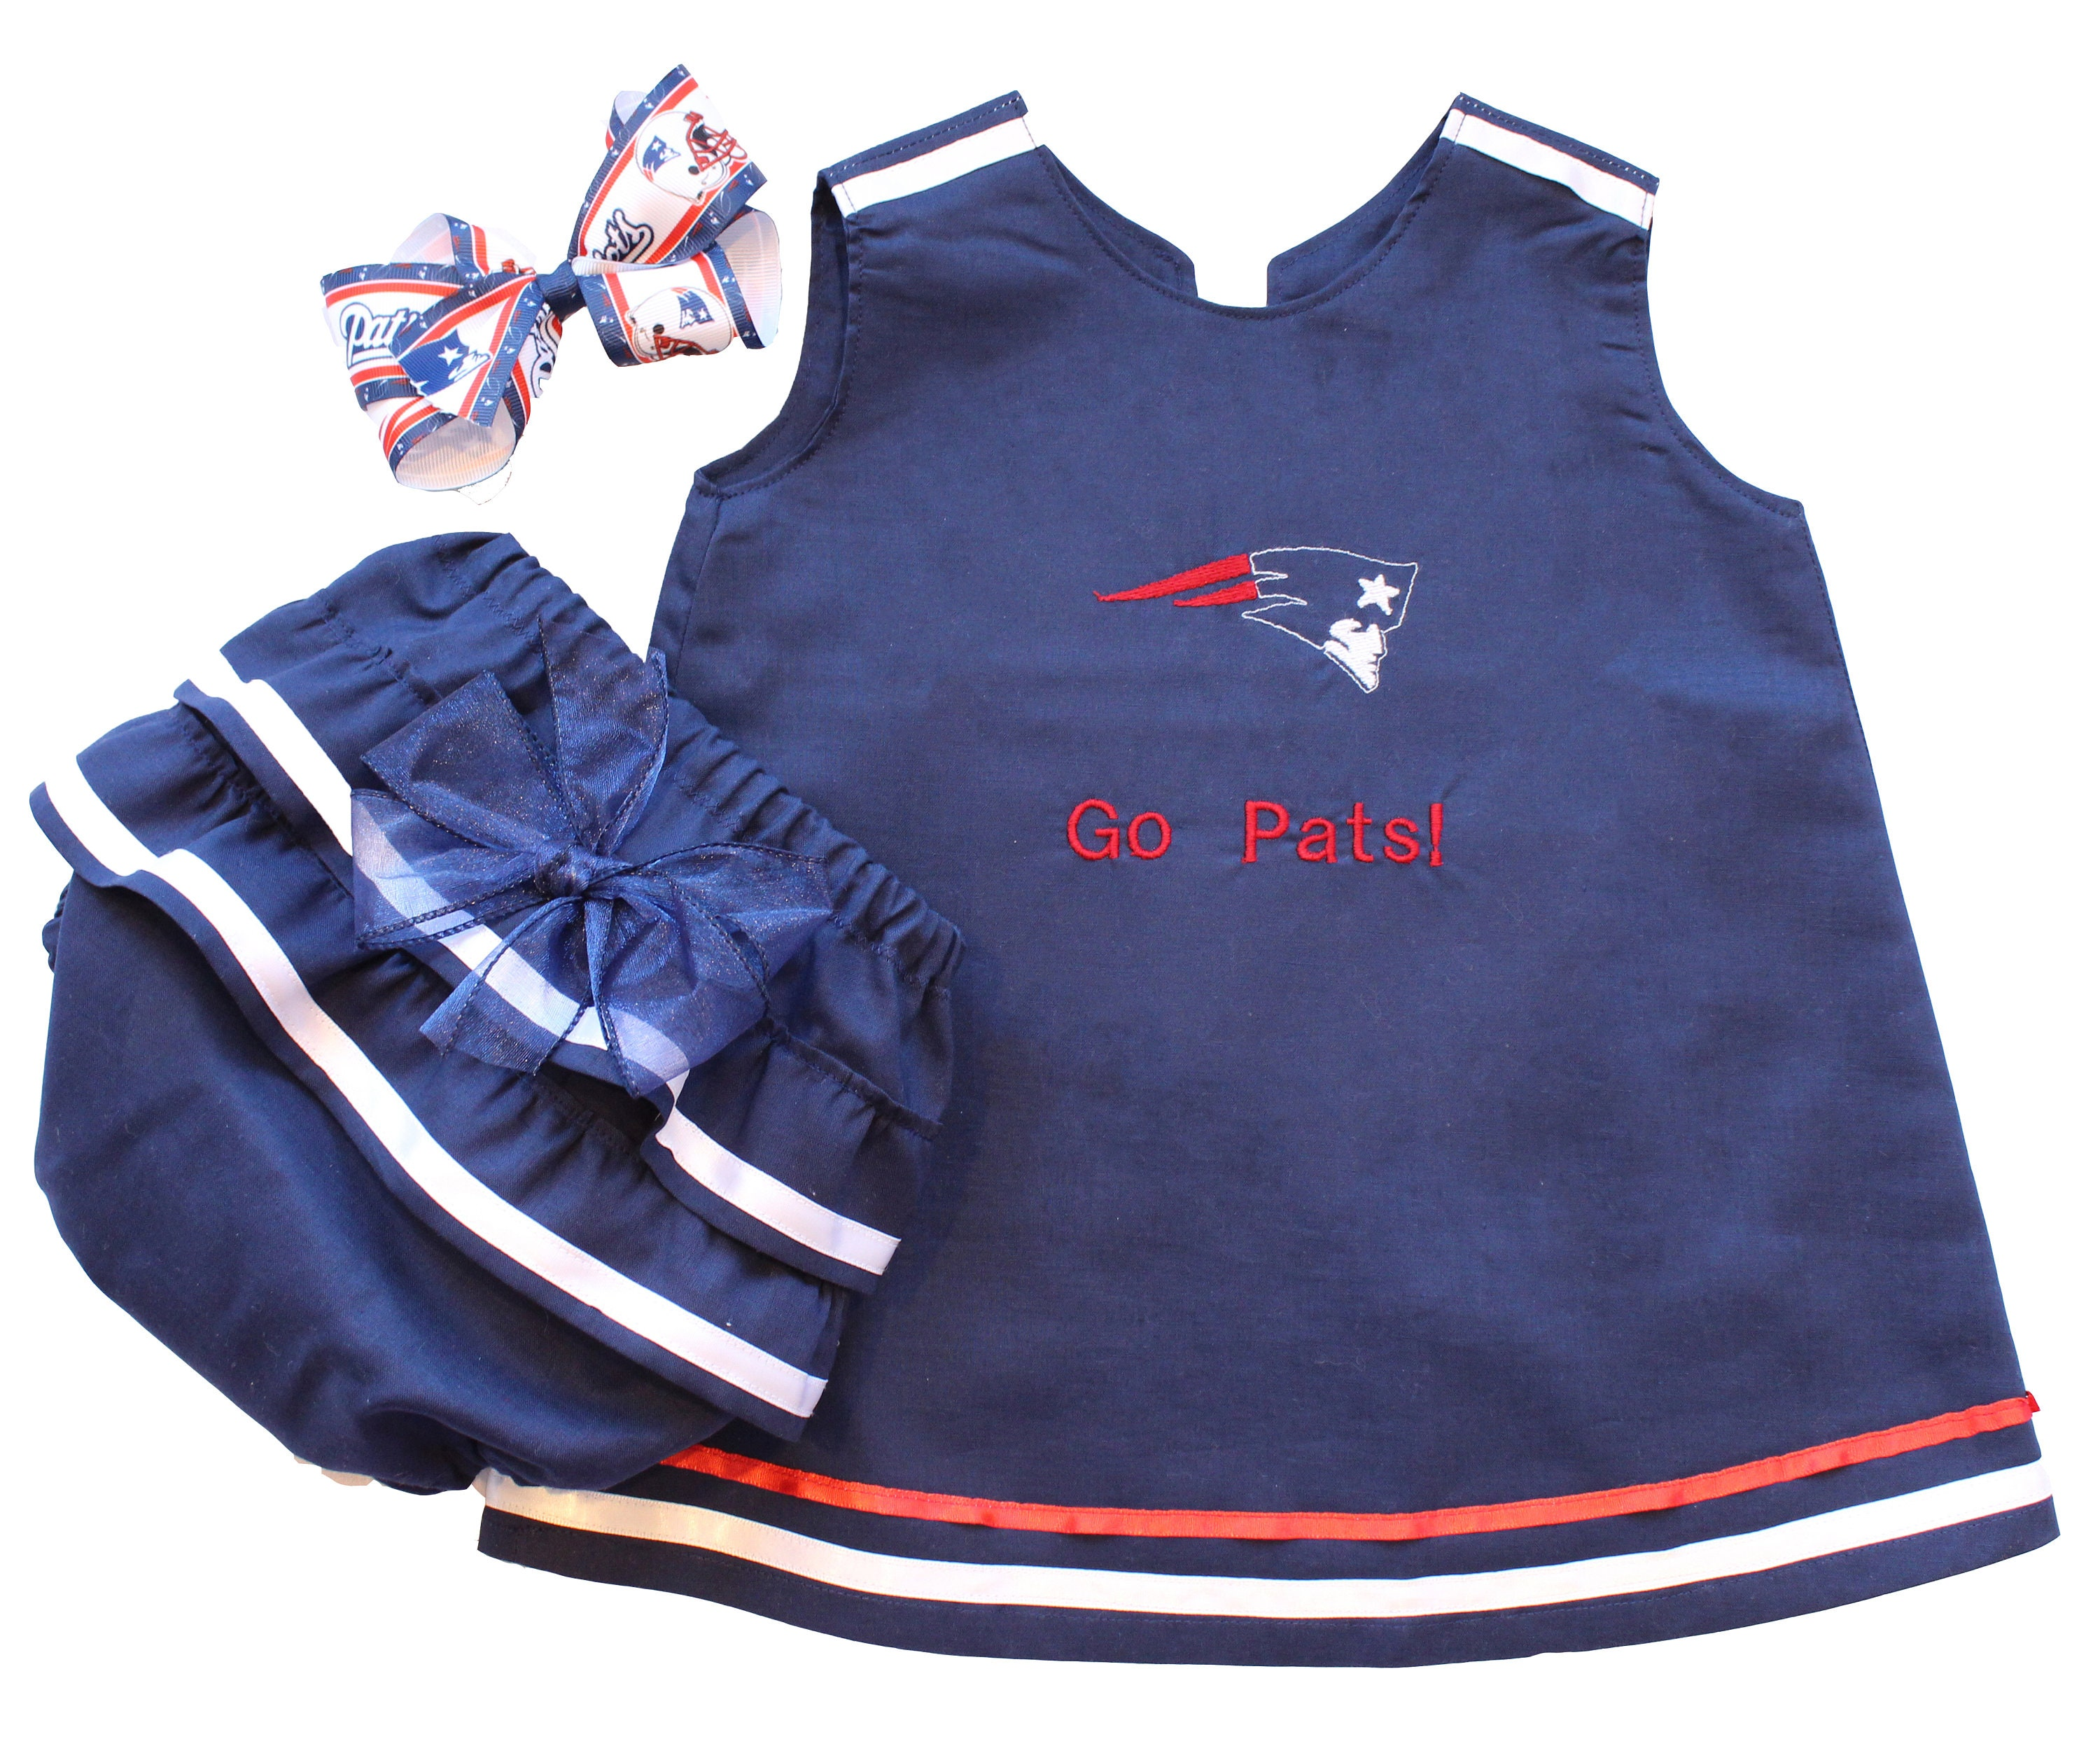 super popular 4c45e e9868 Baby NFL Outfit, New England Patriots Baby Outfit, Patriots Baby Dress,  Patriots Baby Gift, Baby Patriots Fan, Baby Girls Patriots Outfit